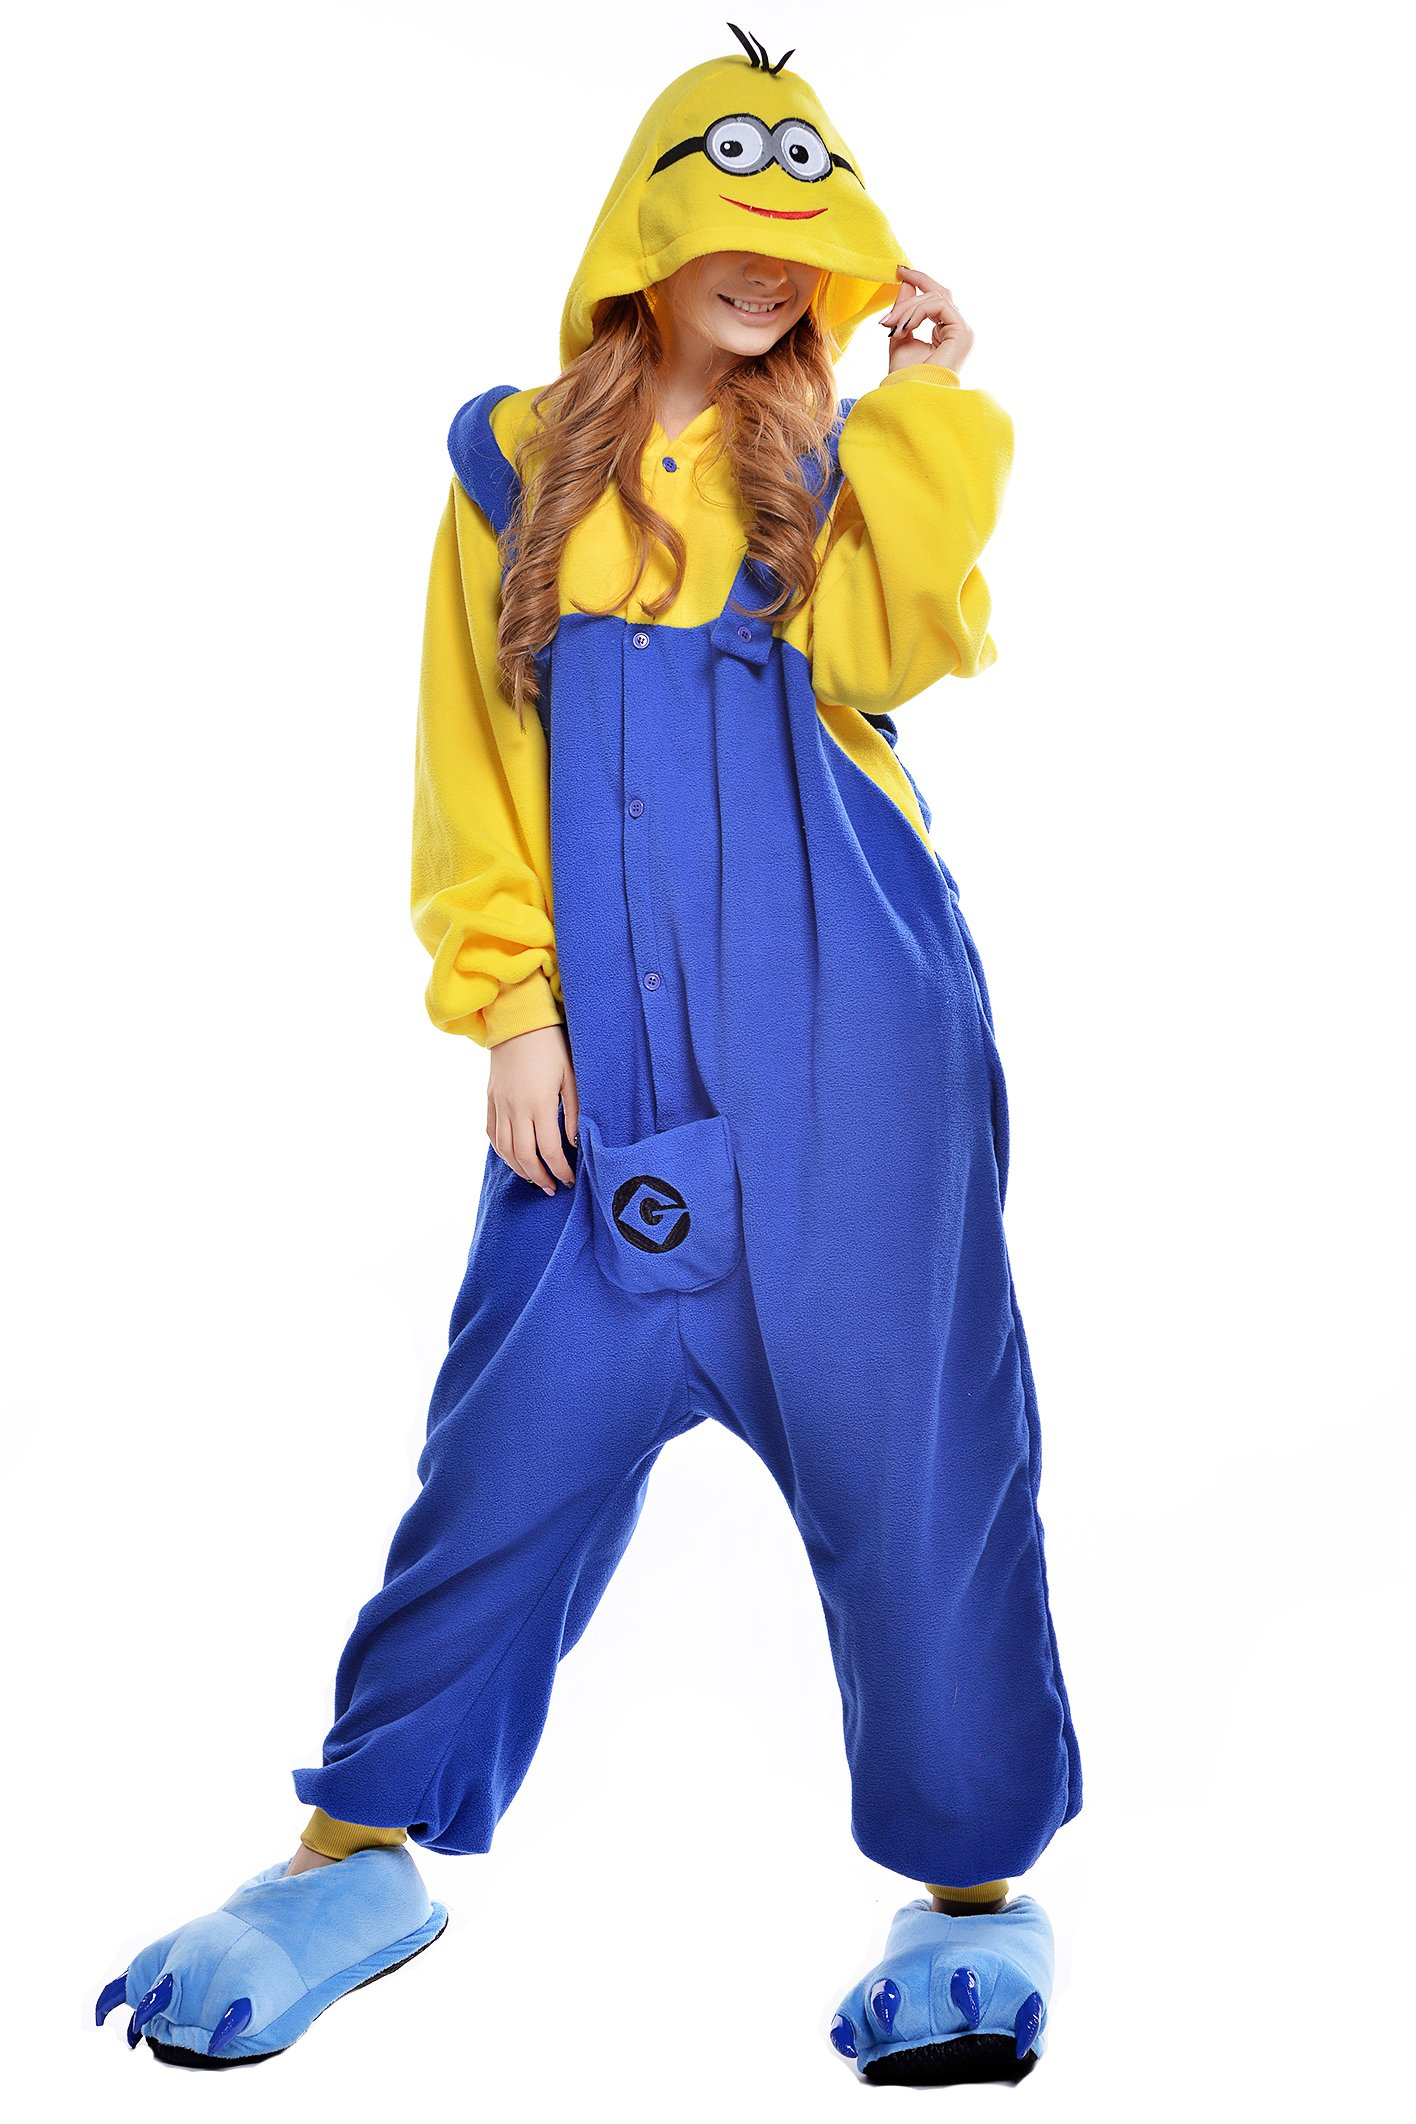 Despicable Me Minion Polar Fleece Onesie Pajamas Cosplay Wtih Slippers small medium large x-karge xxl xxxl